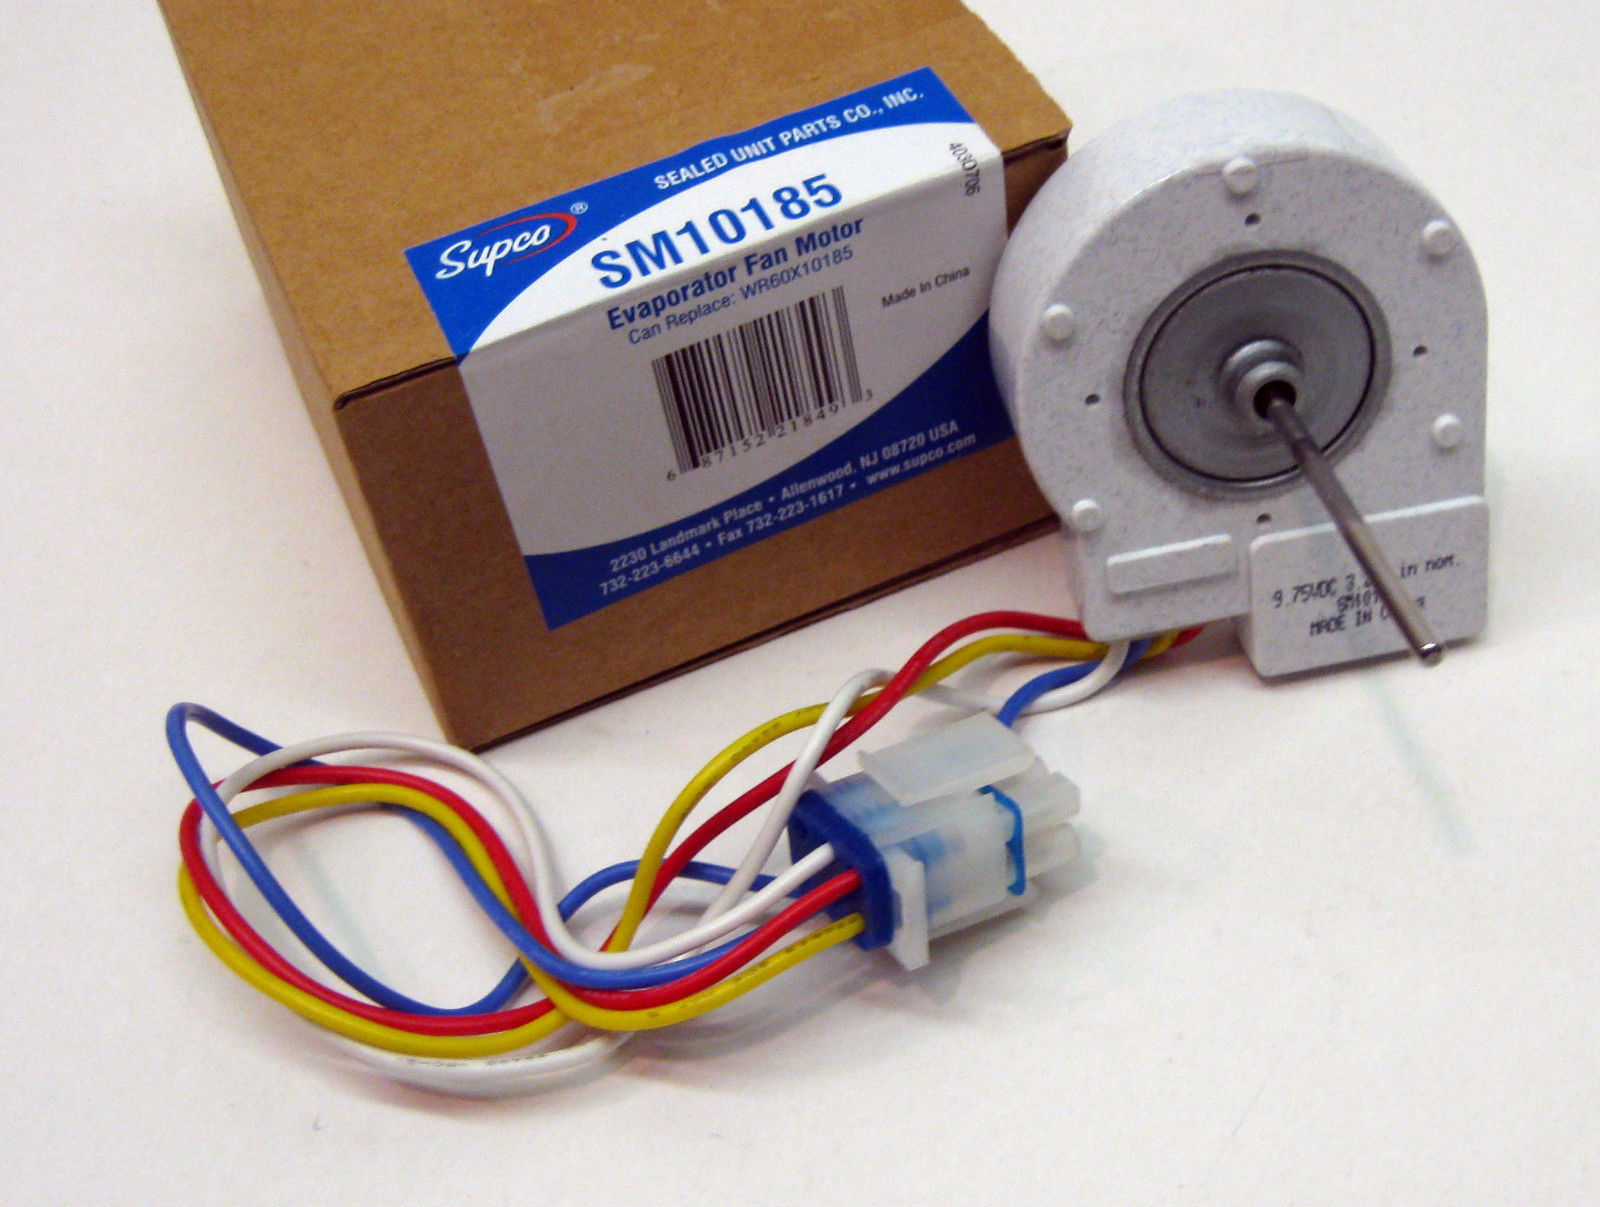 Sm10185 For Wr60x10185 Ge Evaporator Freezer Fan Motor